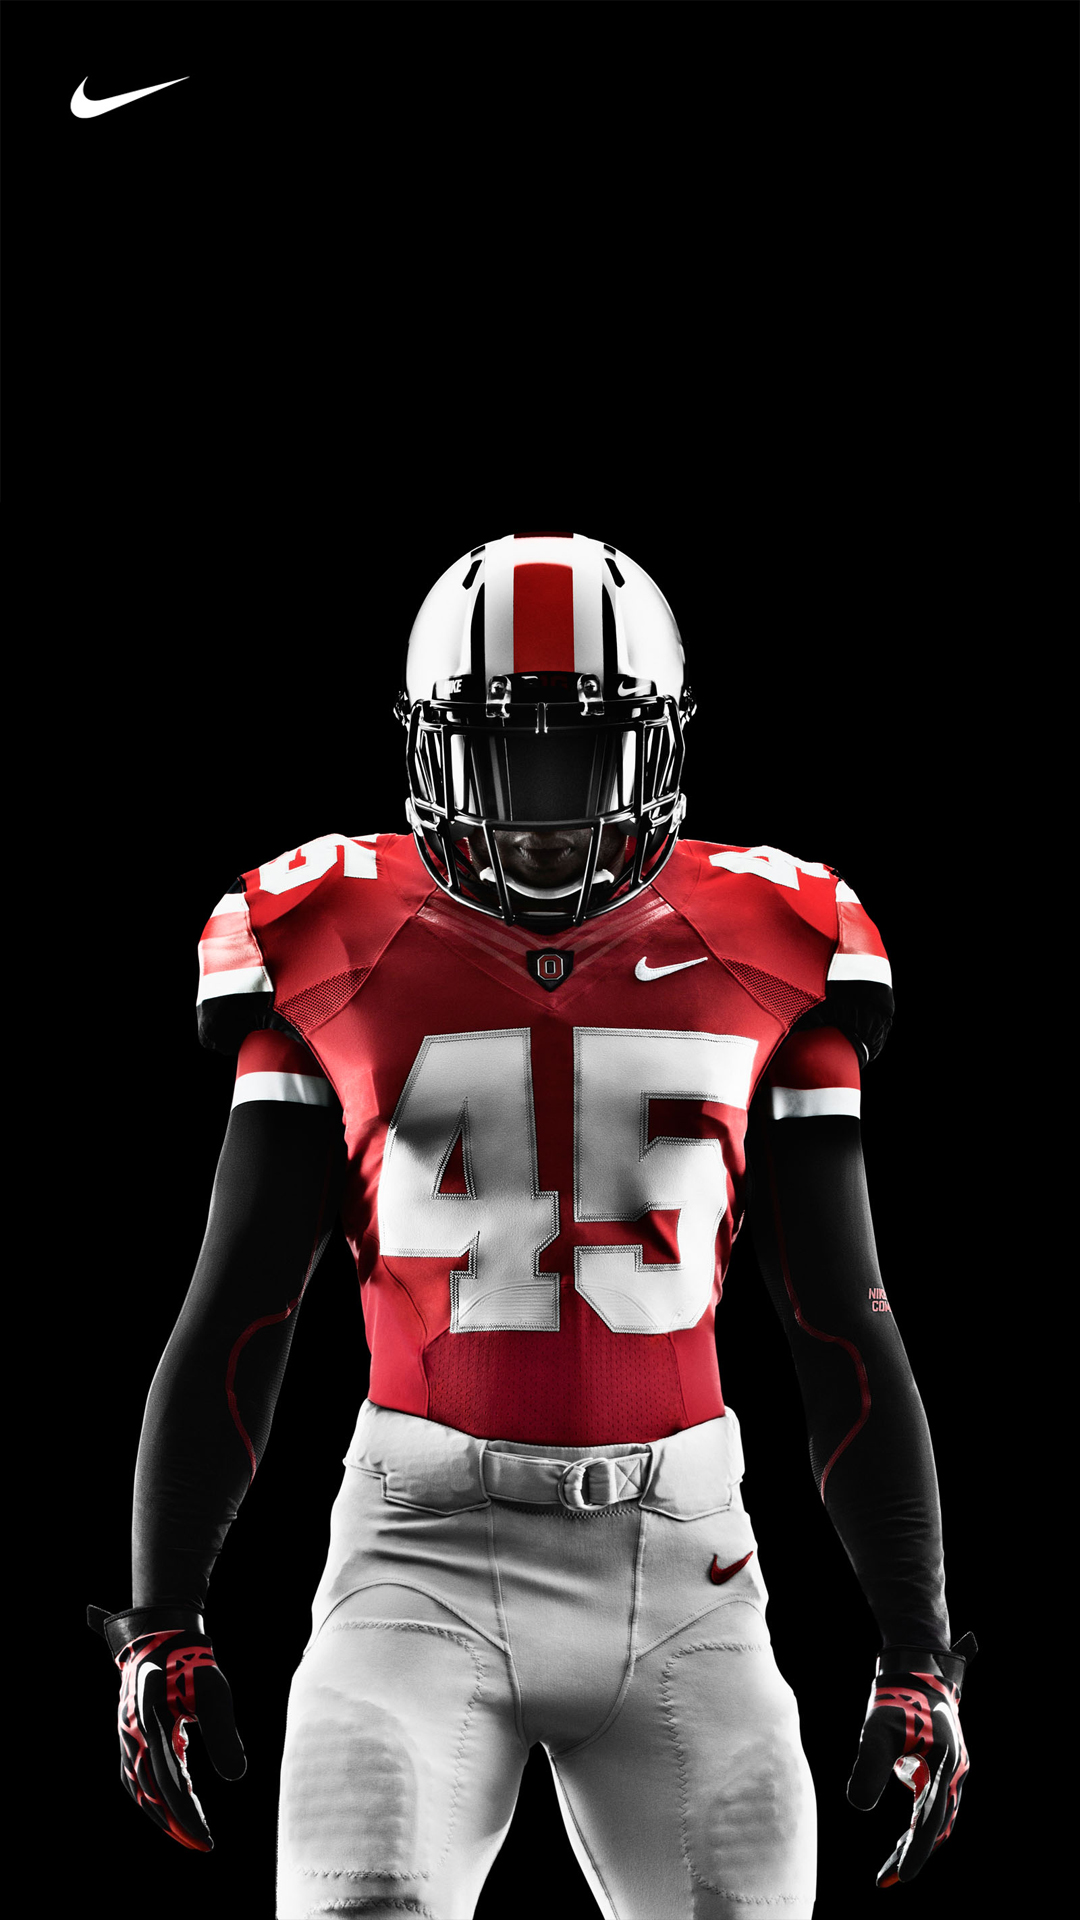 Ohio State Nike Pro Combat Football Uniform - Best htc one wallpapers